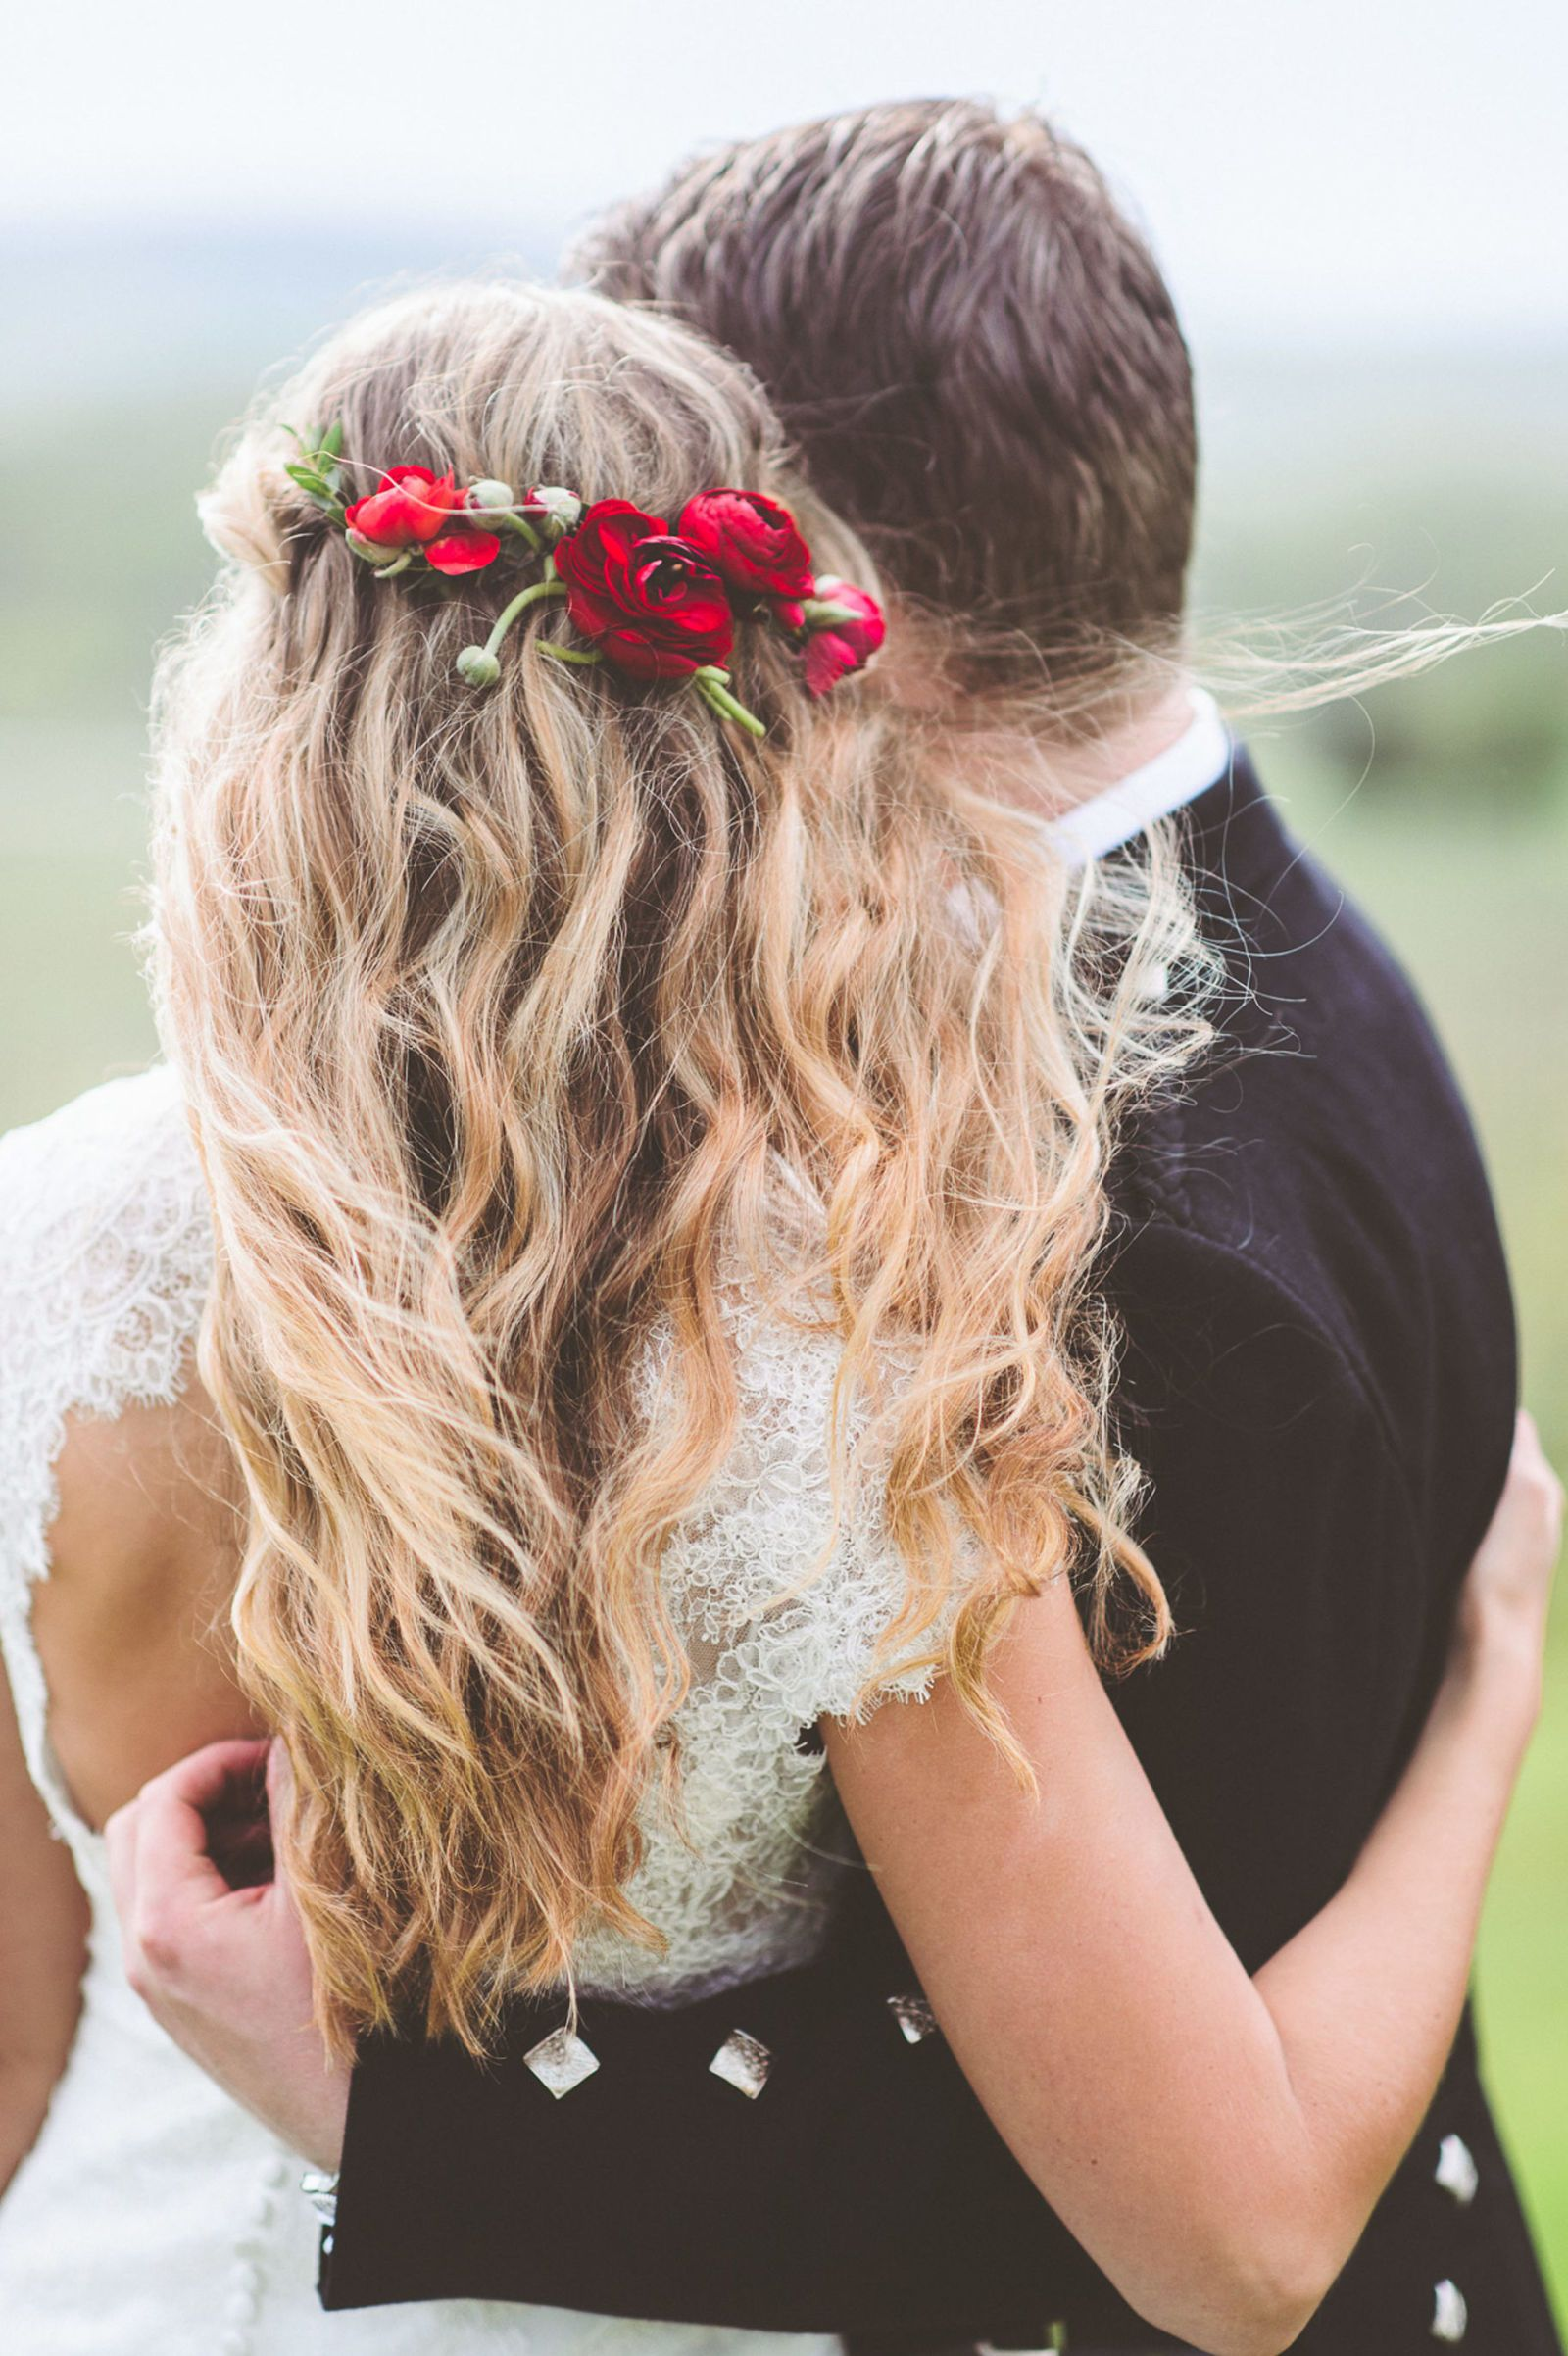 24 Stunning Ways To Wear Flowers In Your Hair On Your Wedding Day Wedding Hair Down Bride Hairstyles Flowers In Hair